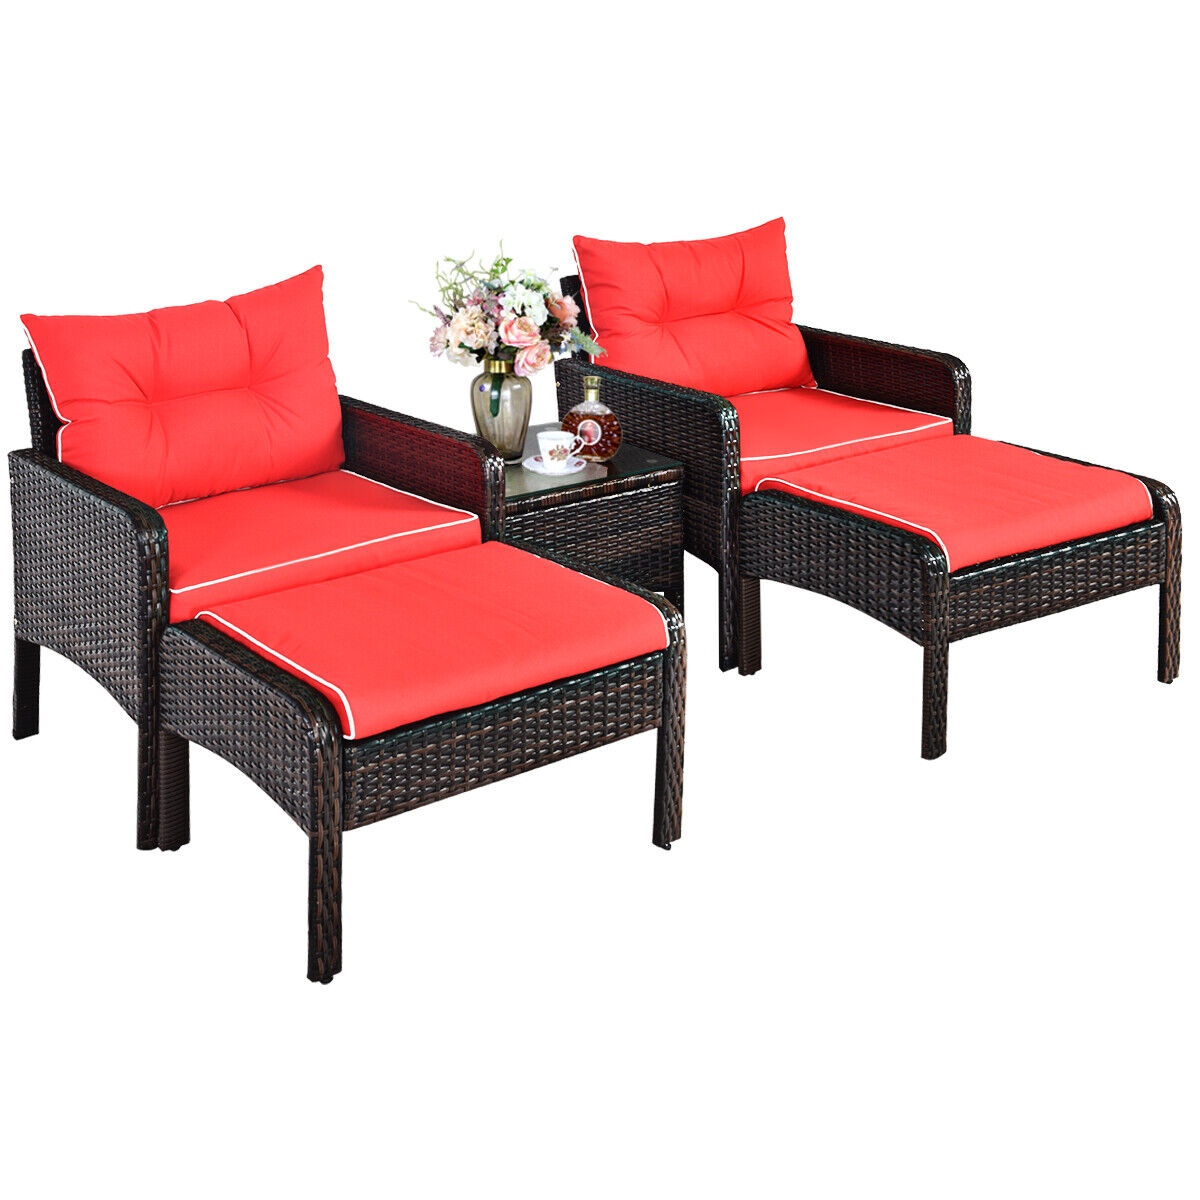 Garden Furniture - 5PCS Rattan Wicker Garden Furniture Set Chairs Ottoman Coffee Table Red Cushion